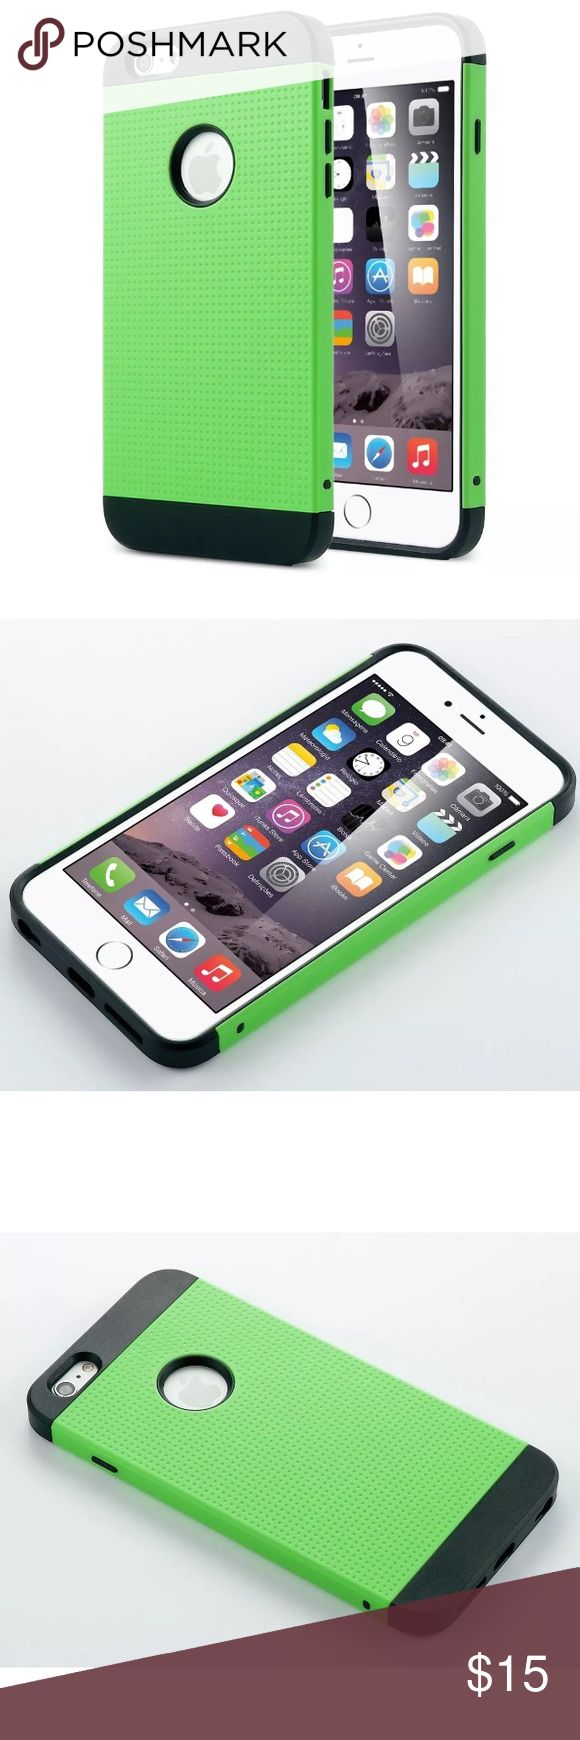 IPhone 6 / 6s + Plus heavy duty 2-piece case GREEN IPhone 6 / 6s + Plus heavy duty 2-piece case. Shown in GREEN!  Comes with a free screen protector, a stylus, and screen wipe cloth ULAK Accessories Phone Cases